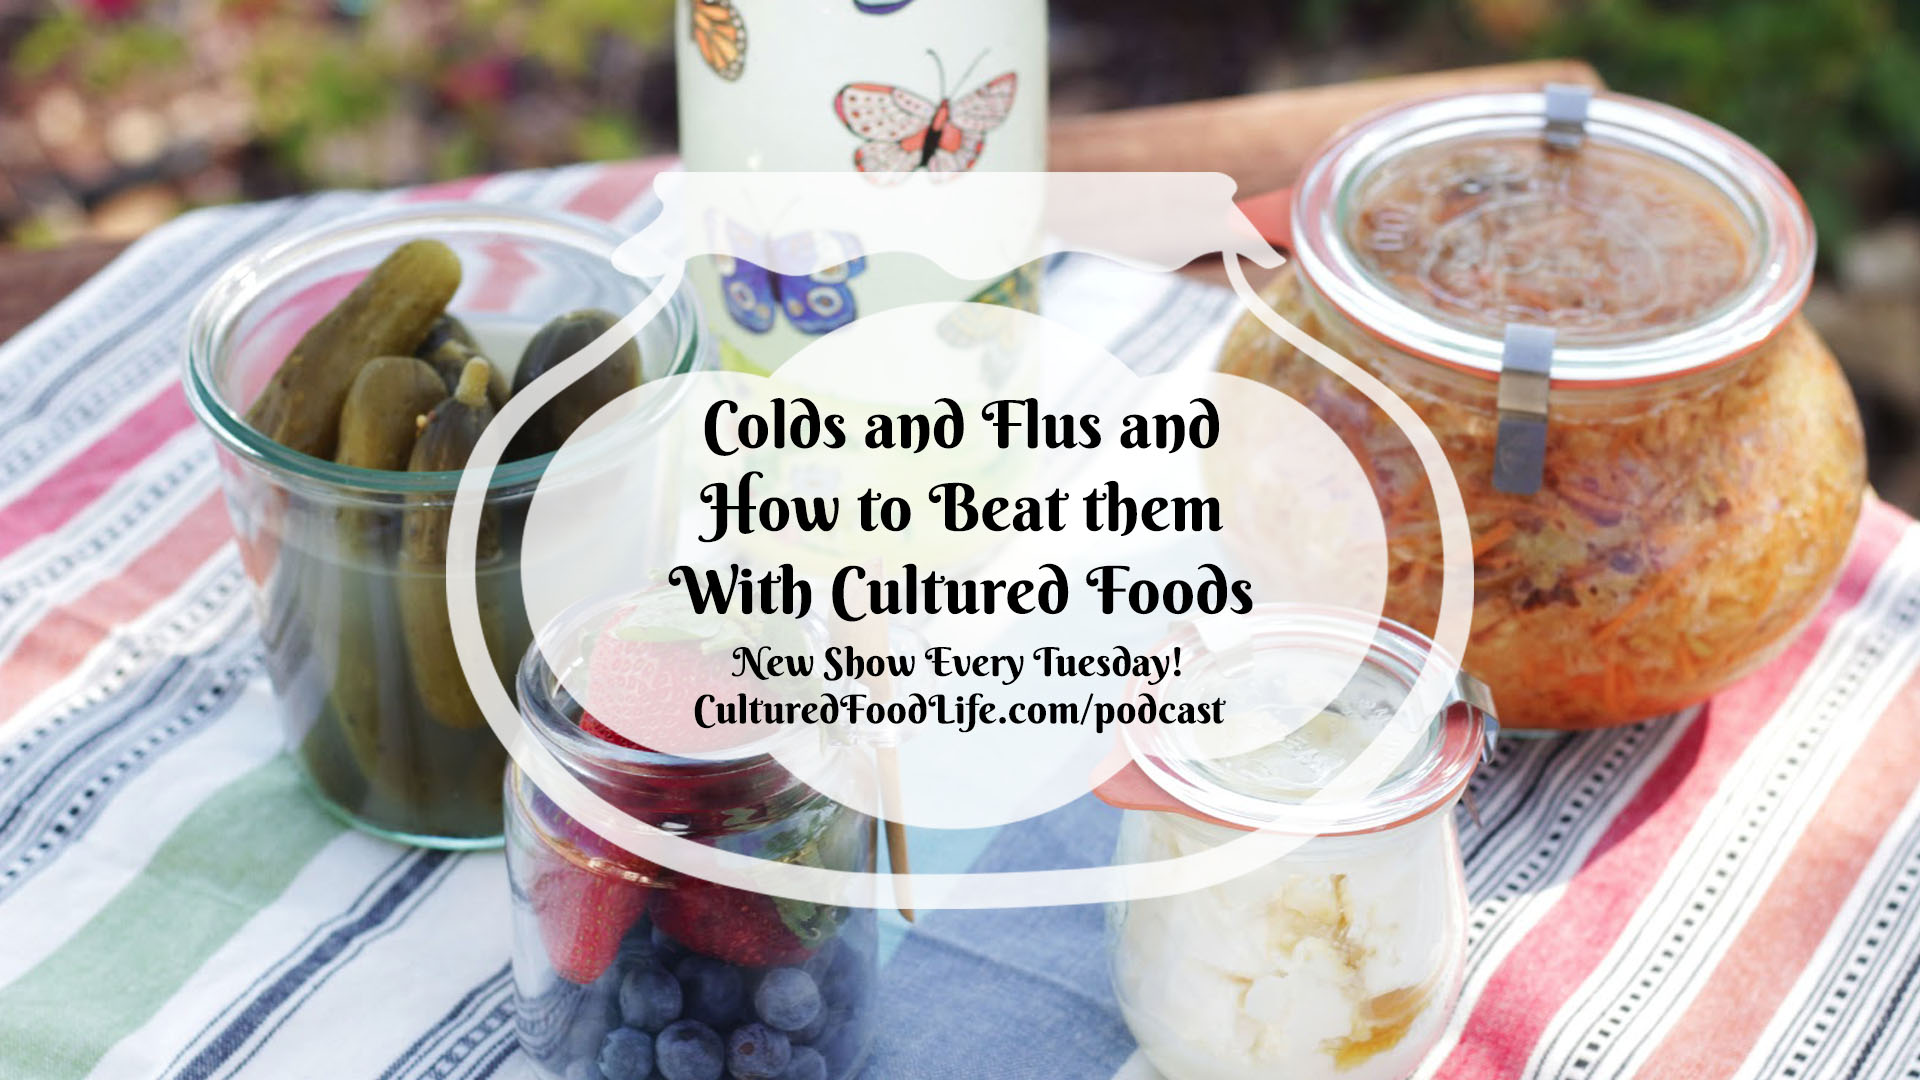 Colds and Flus and How to Beat them With Cultured Foods Full